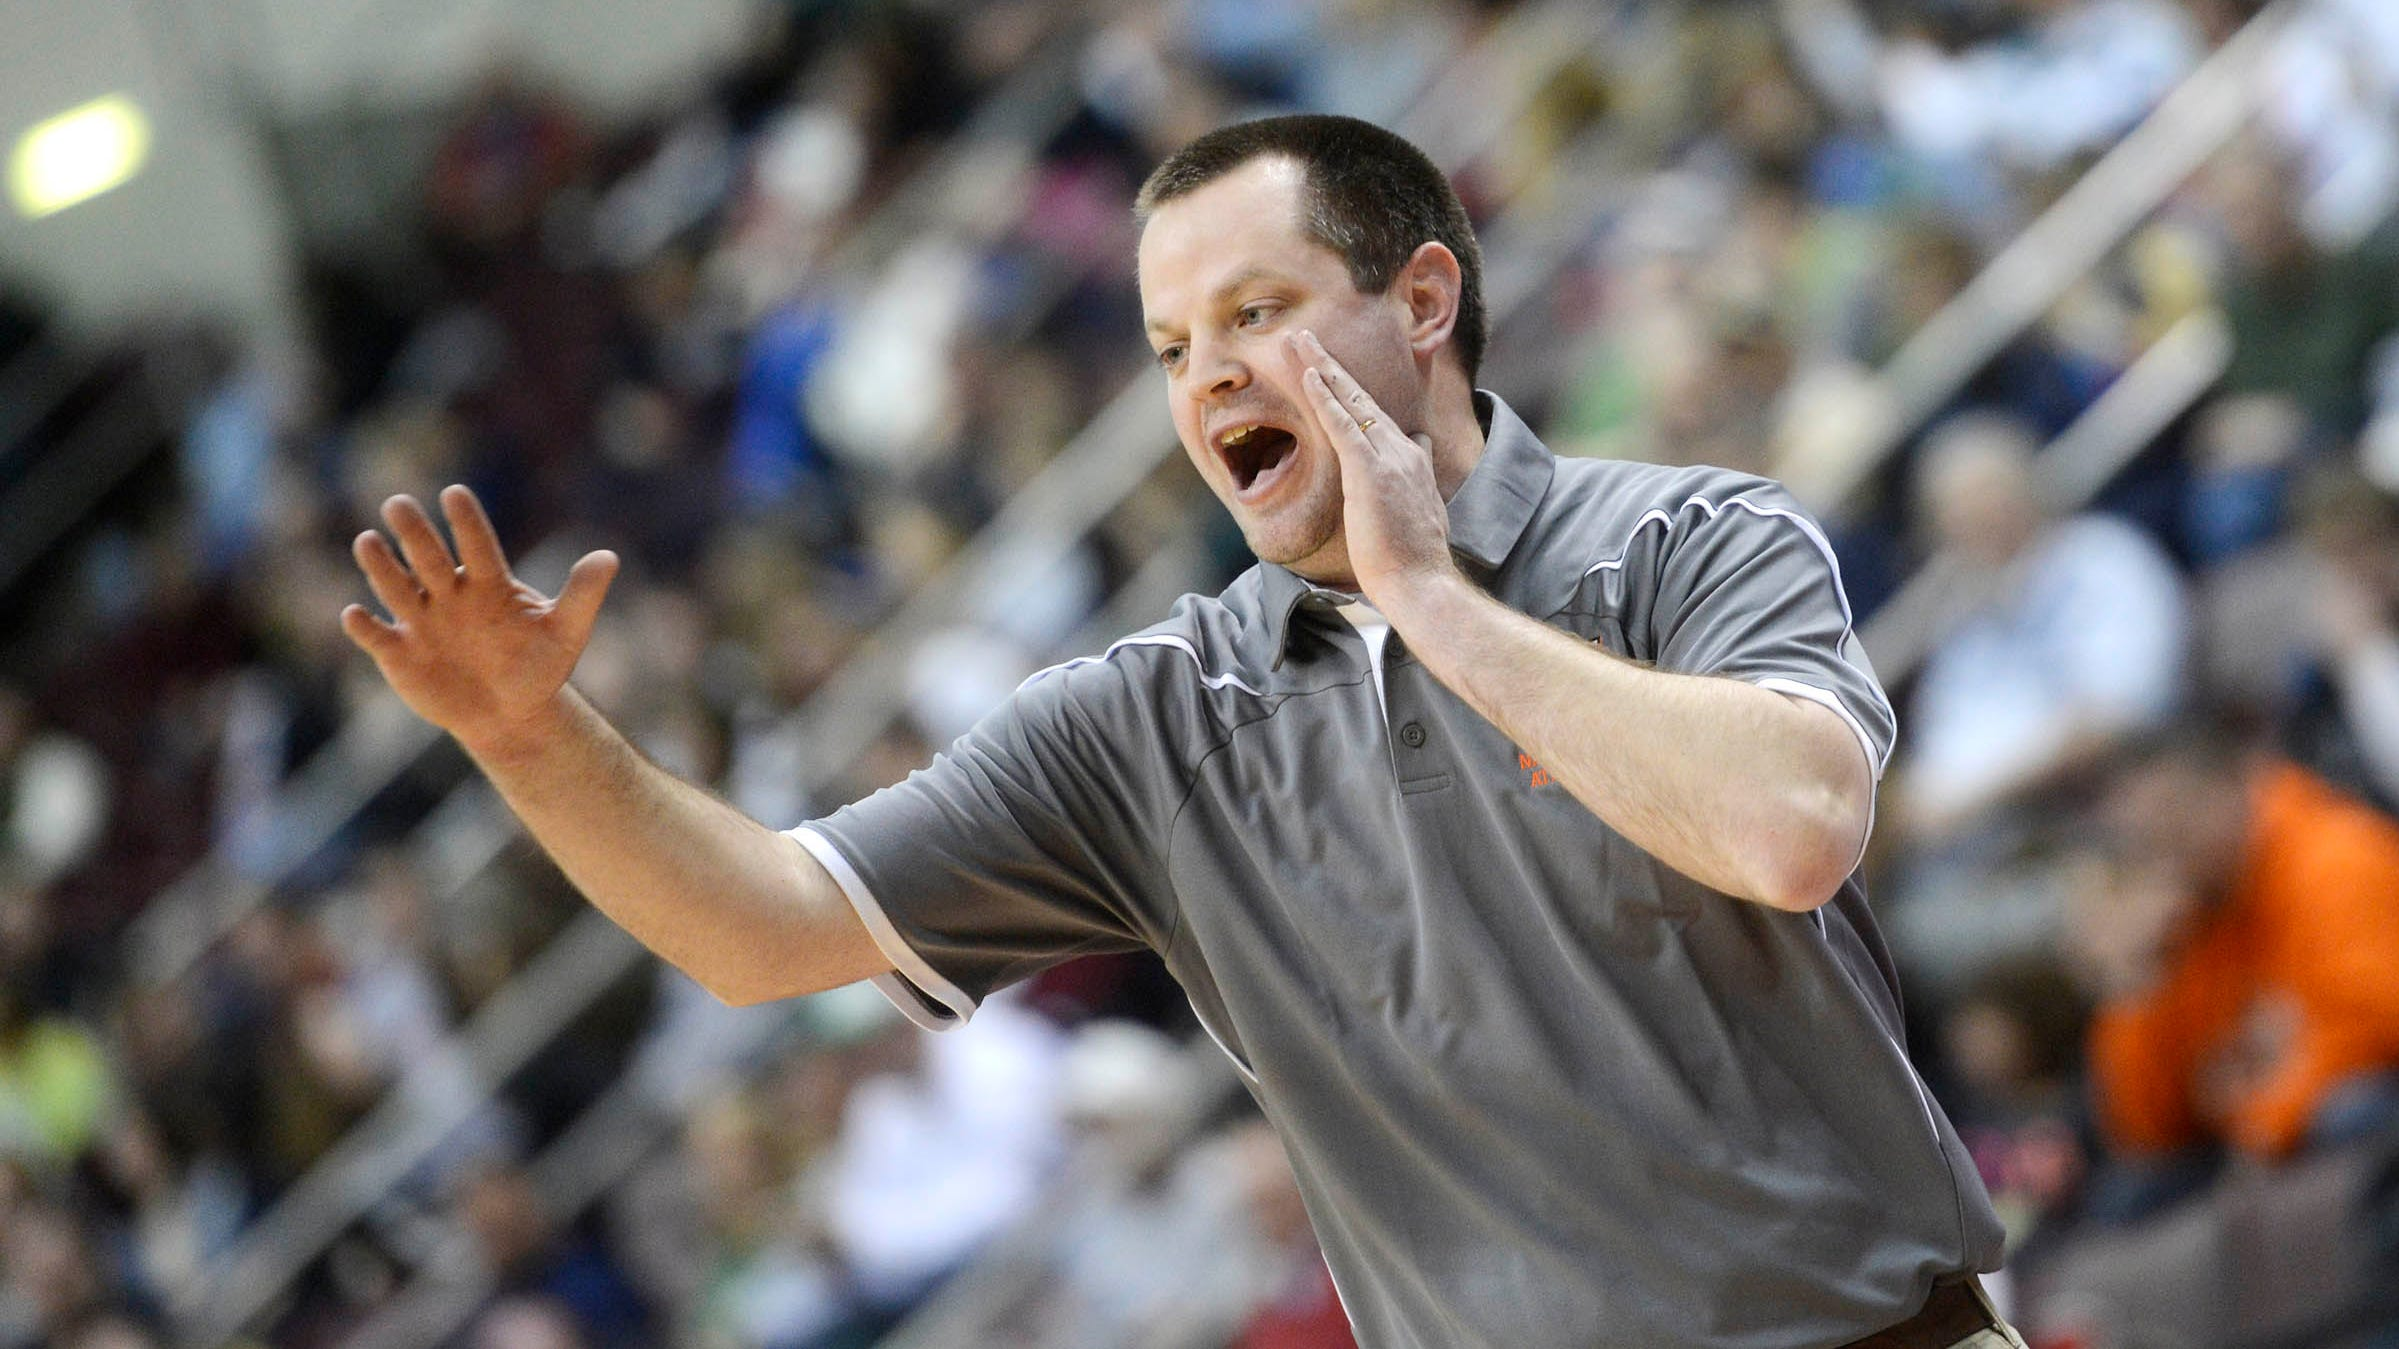 In this file photo from 2014, Hanover coach Nathan Myers yells from the sideline during the boys' basketball District 3 Class AA championship game at the Giant Center in Hershey Friday, February 28, 2014. Hanover lost to Trinity 55-46.